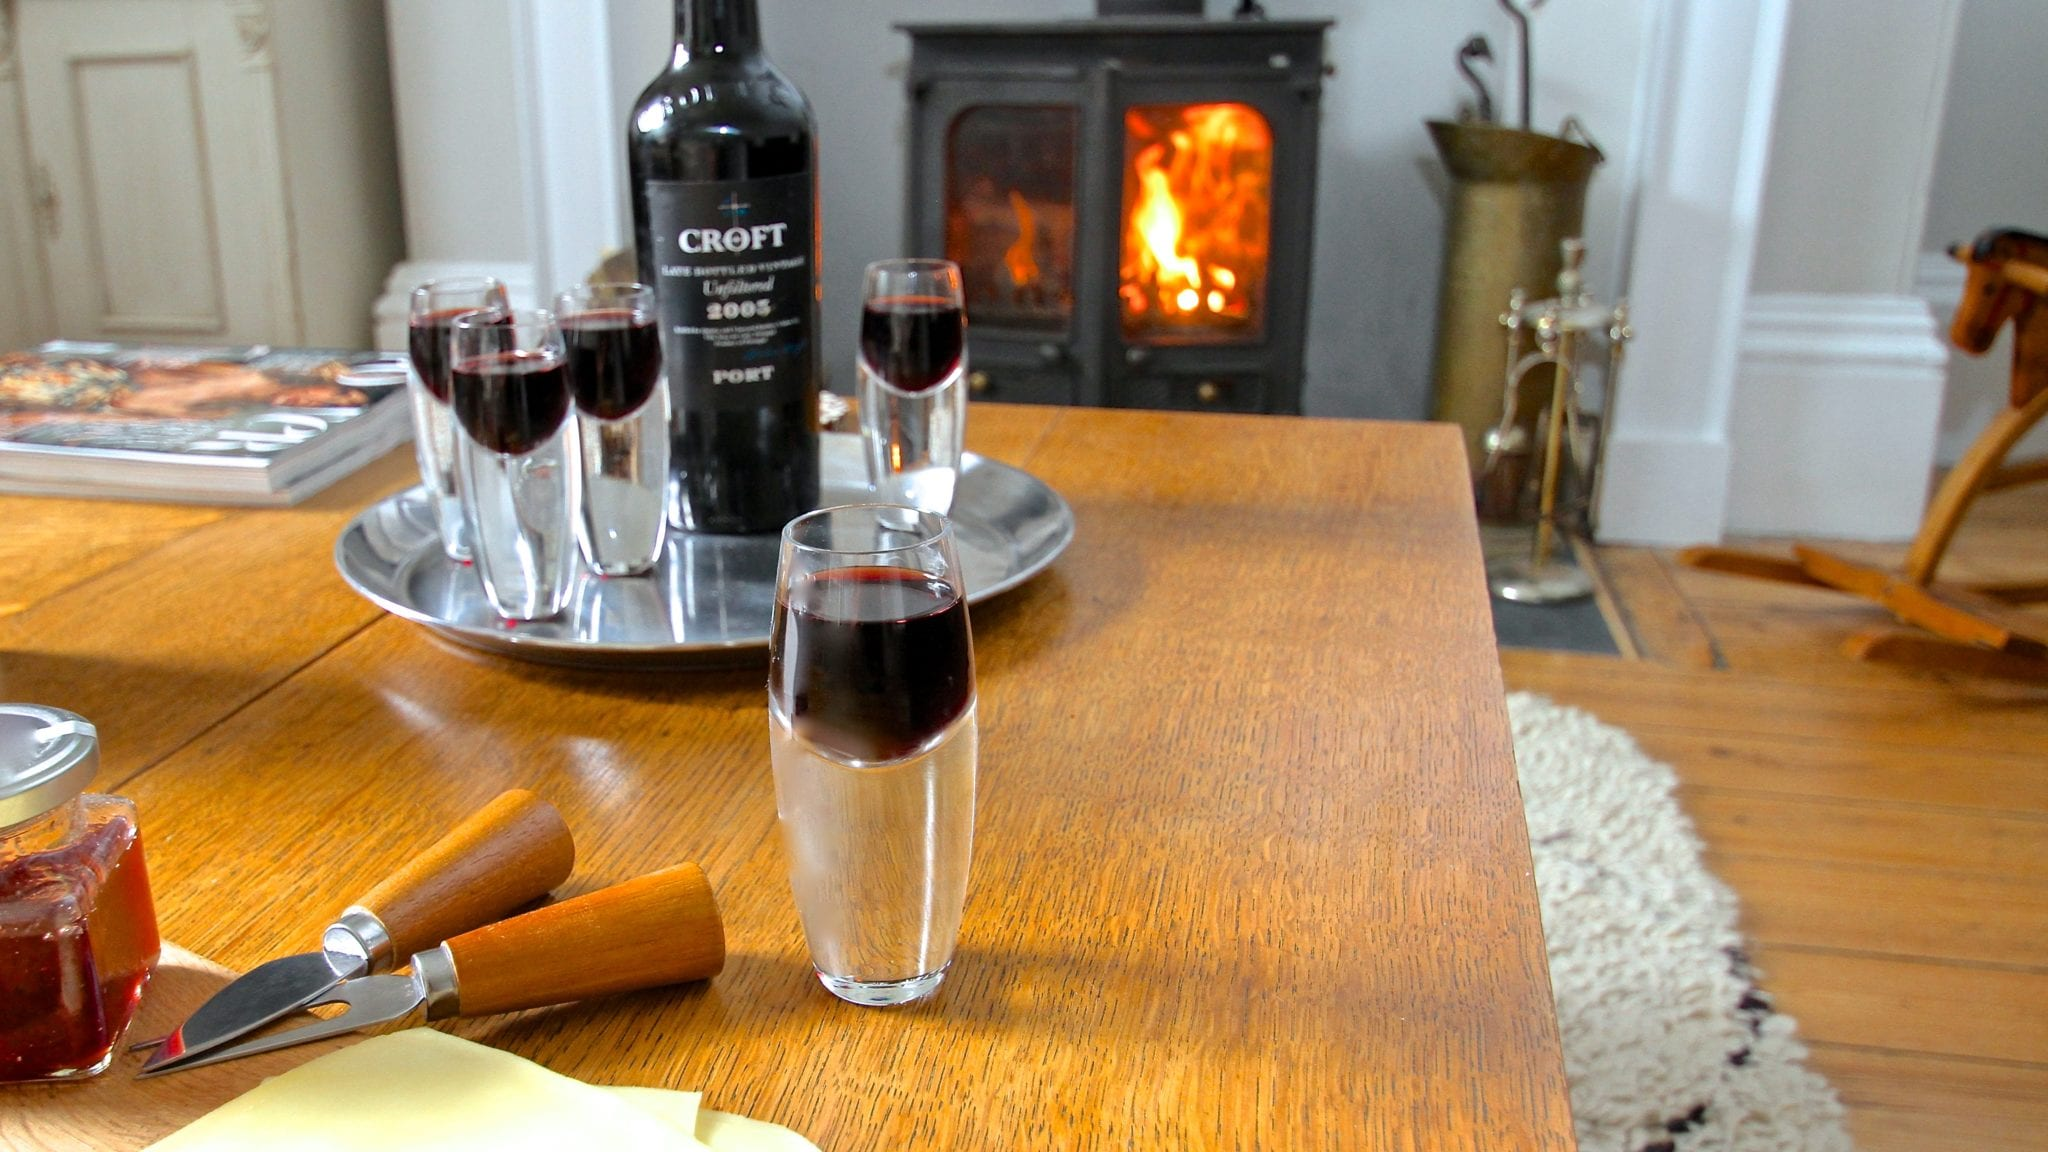 Bottle of port on table roaring woodburner